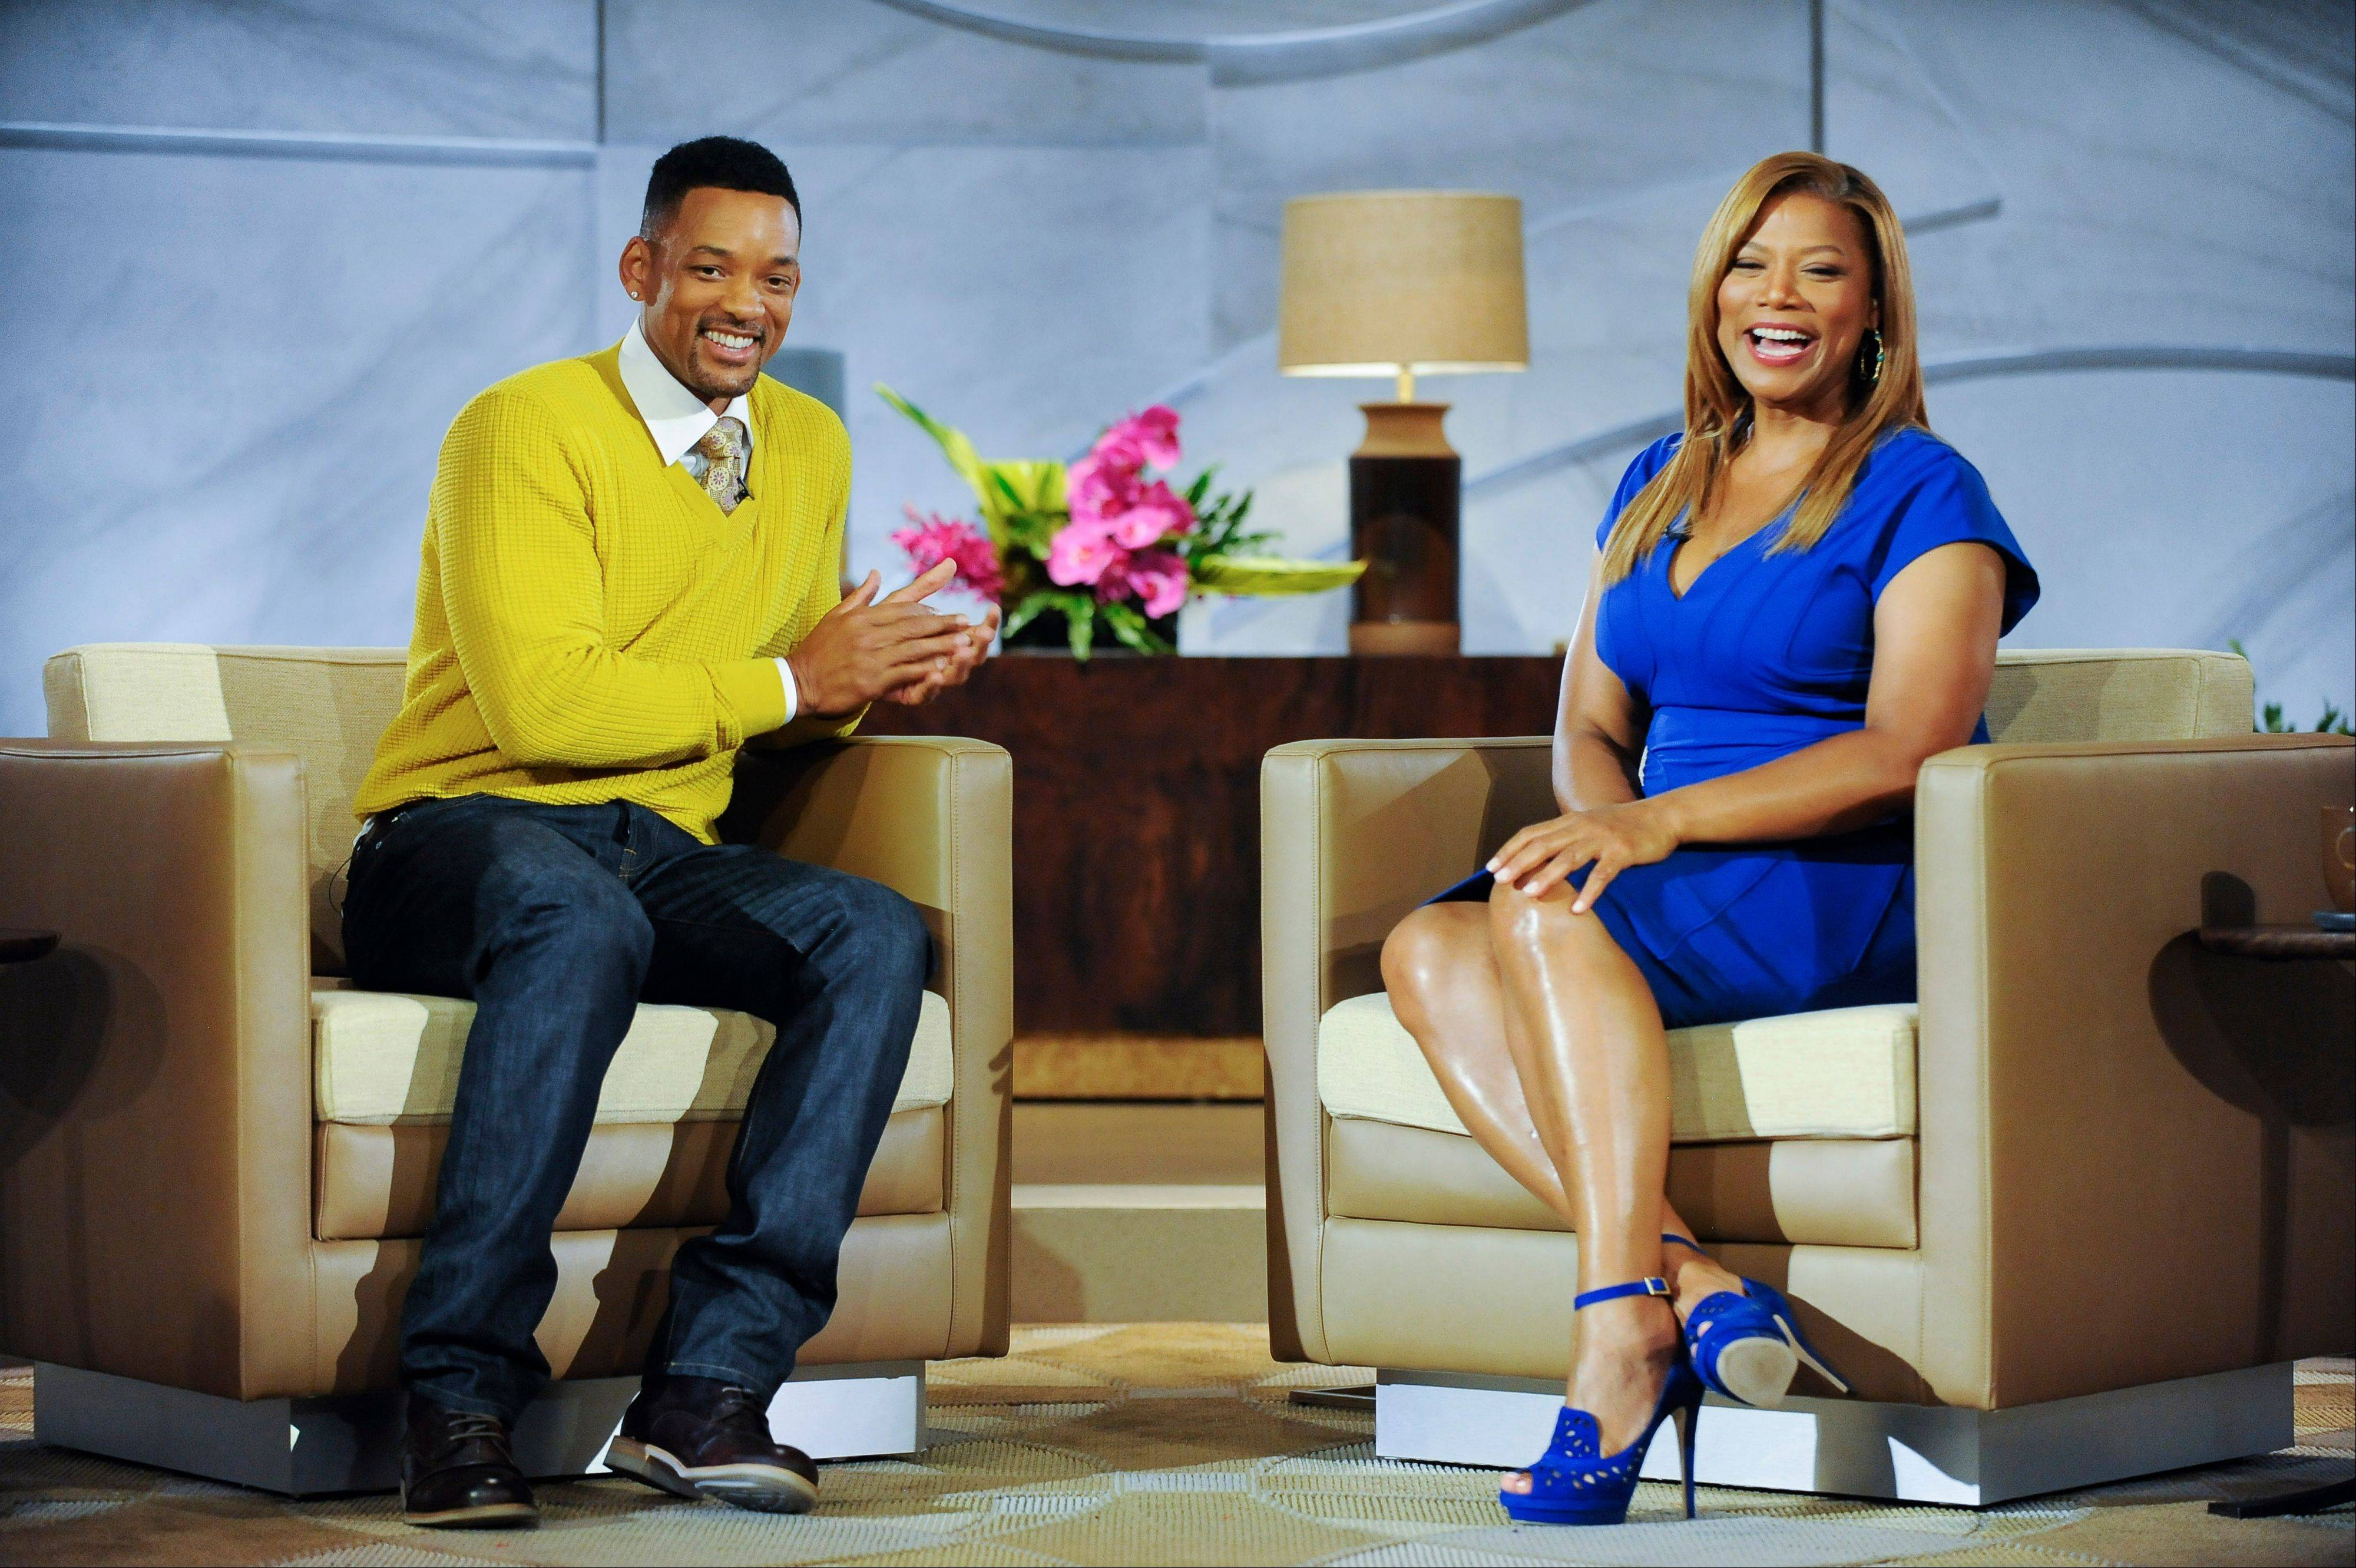 Will Smith serves as executive producer on Queen Latifah�s new daytime talk show, �The Queen Latifah Show,� which debuts Monday.